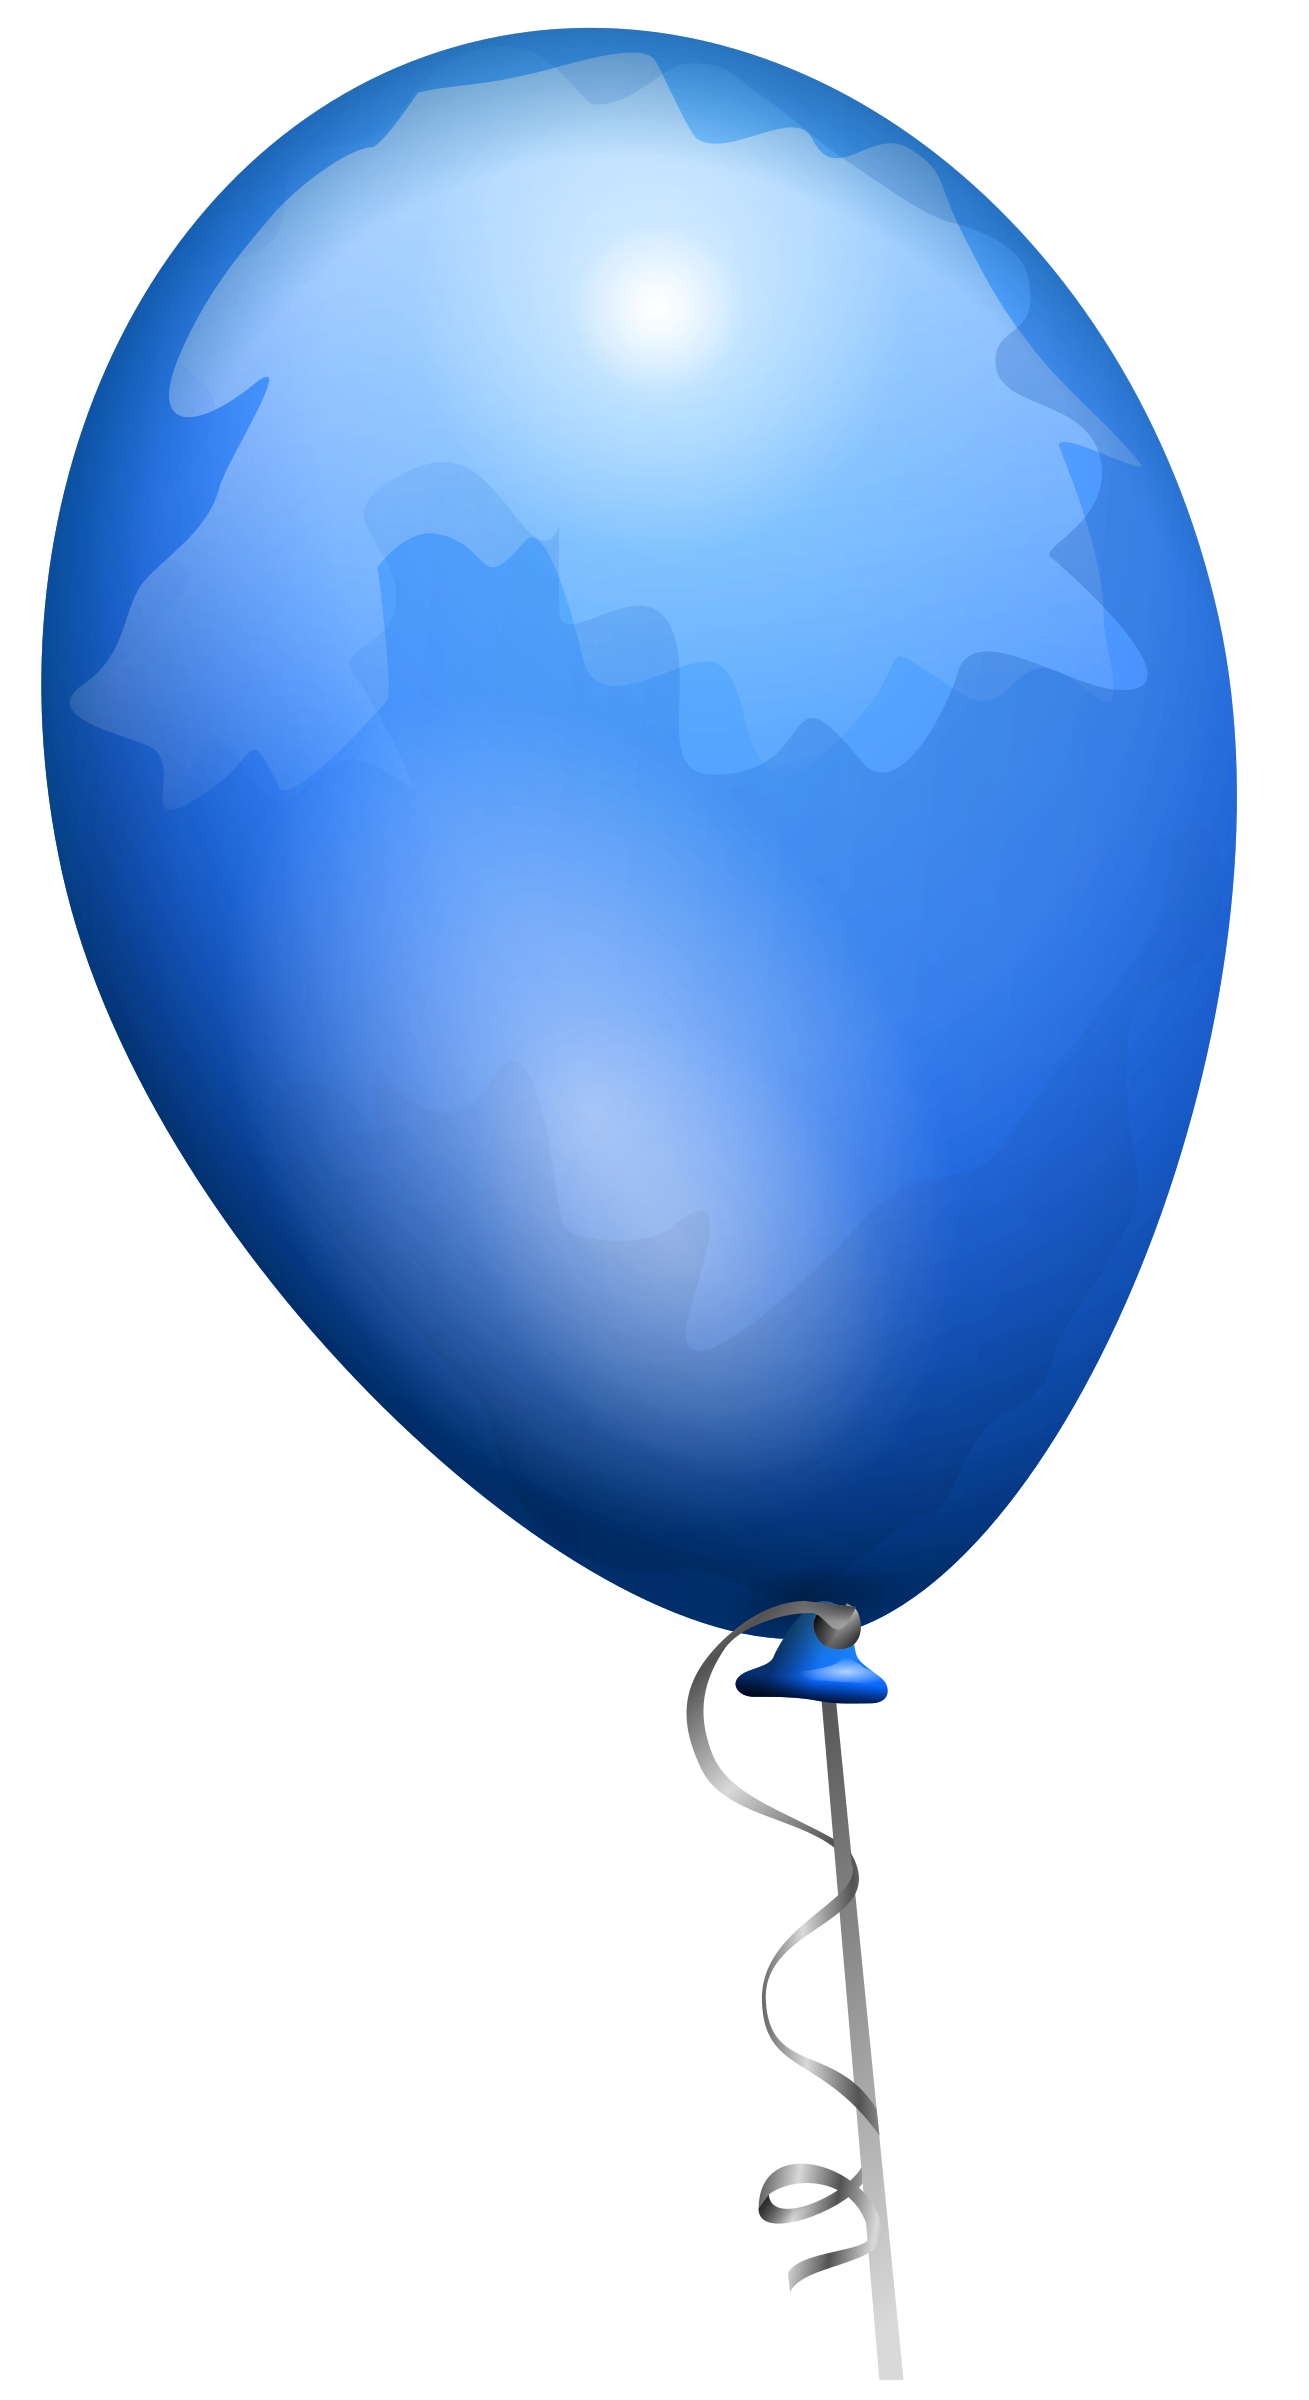 Blue balloon by AJ